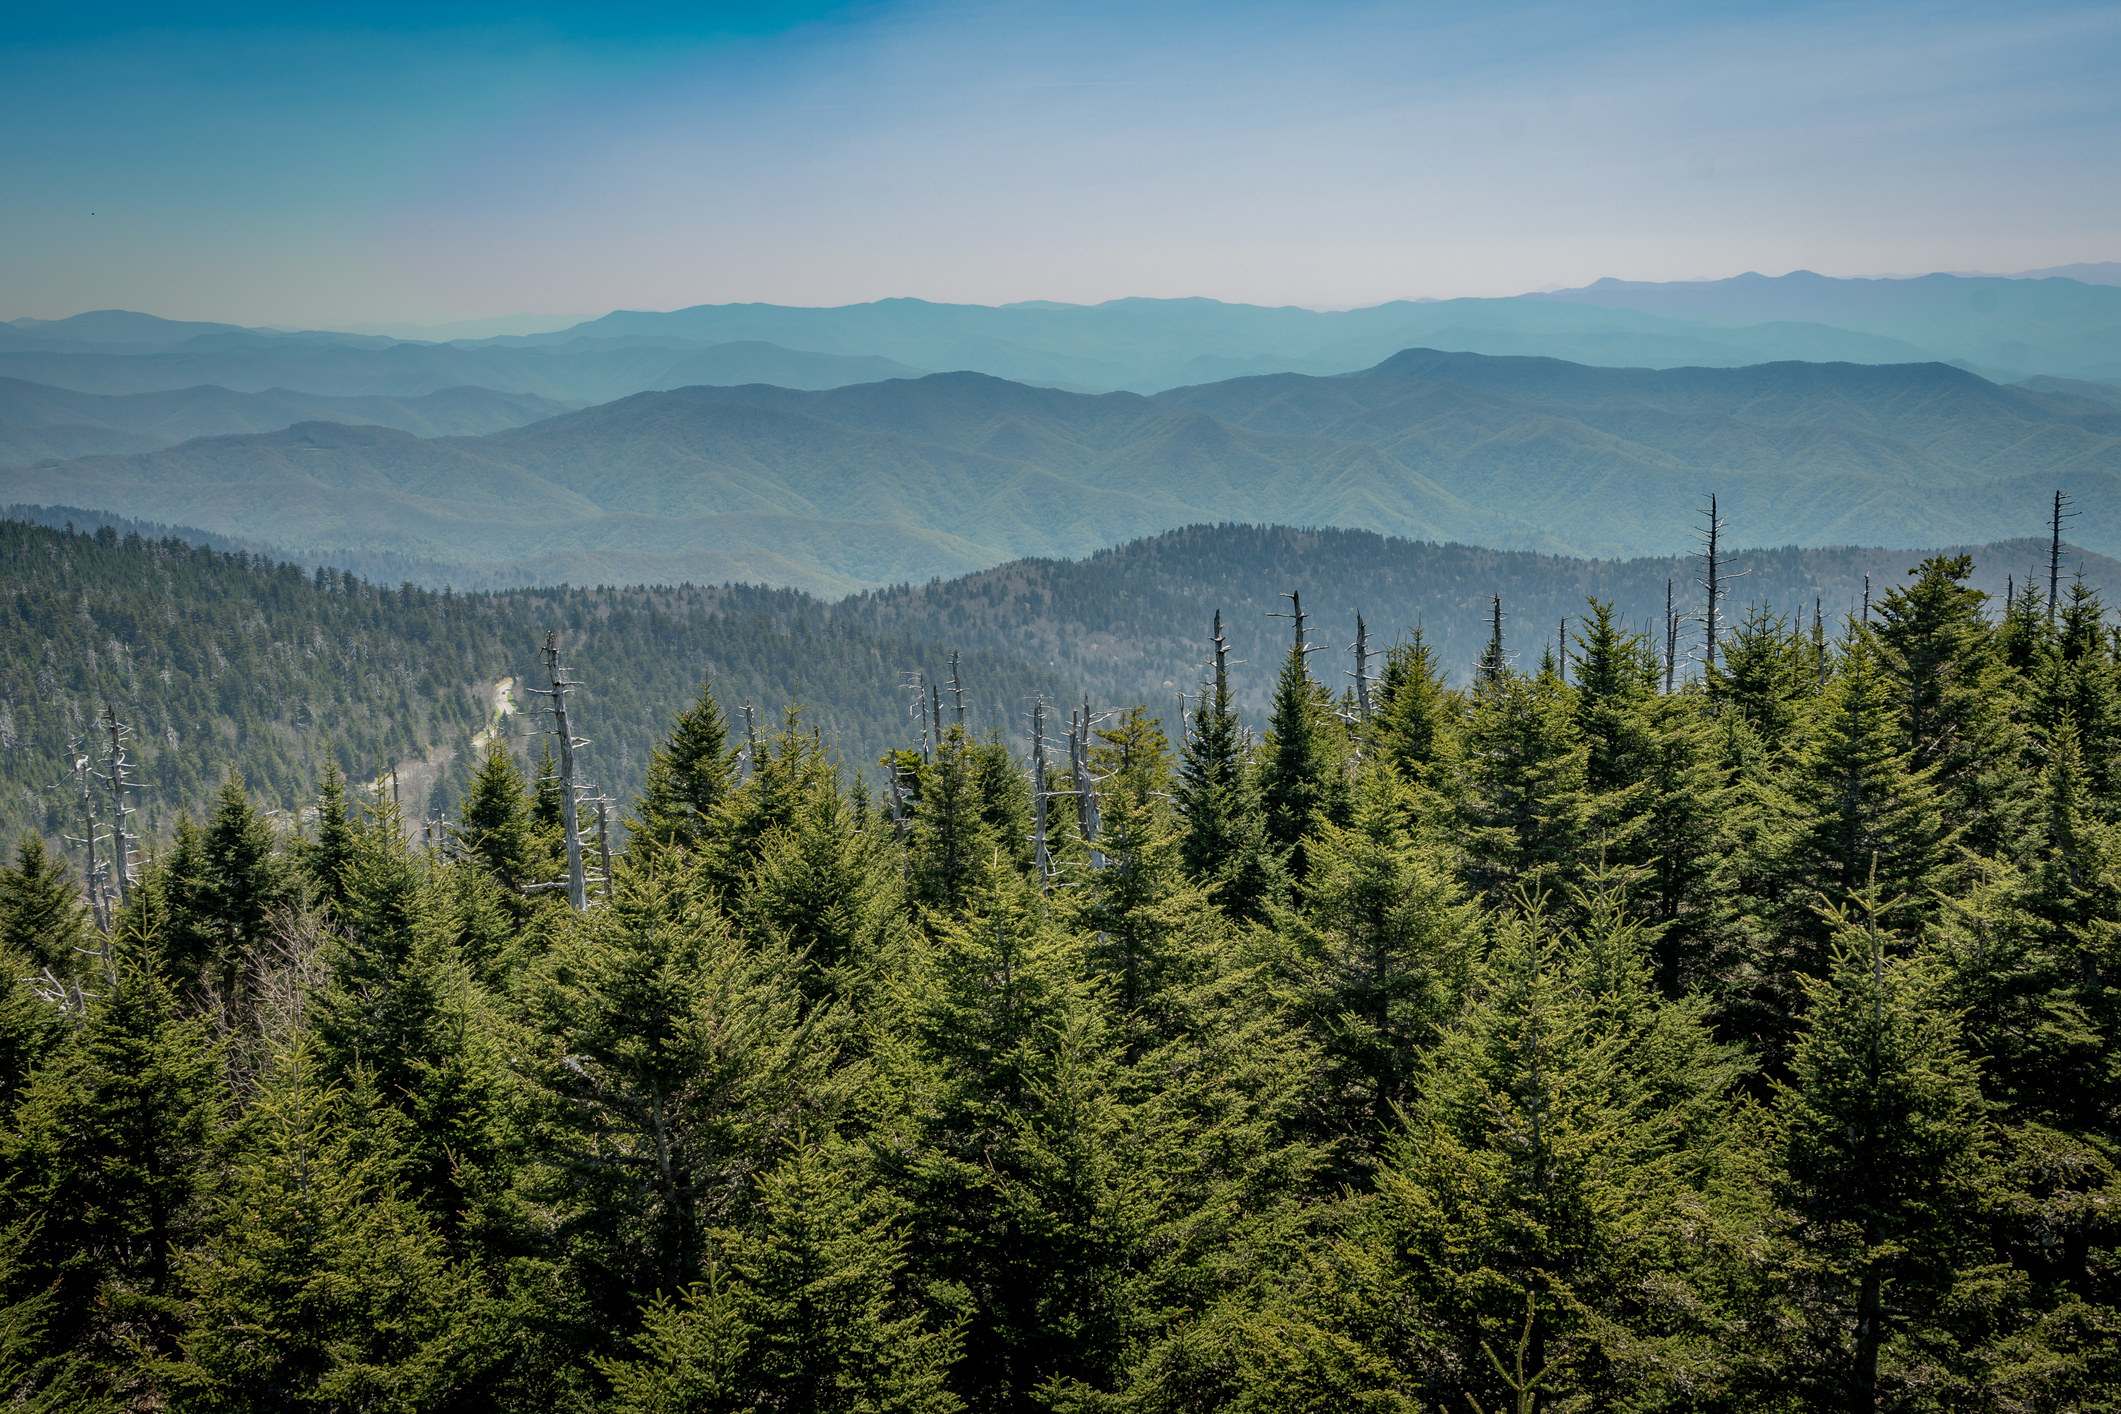 View From Clingman's Dome looking over a forest of fir trees on the mountains